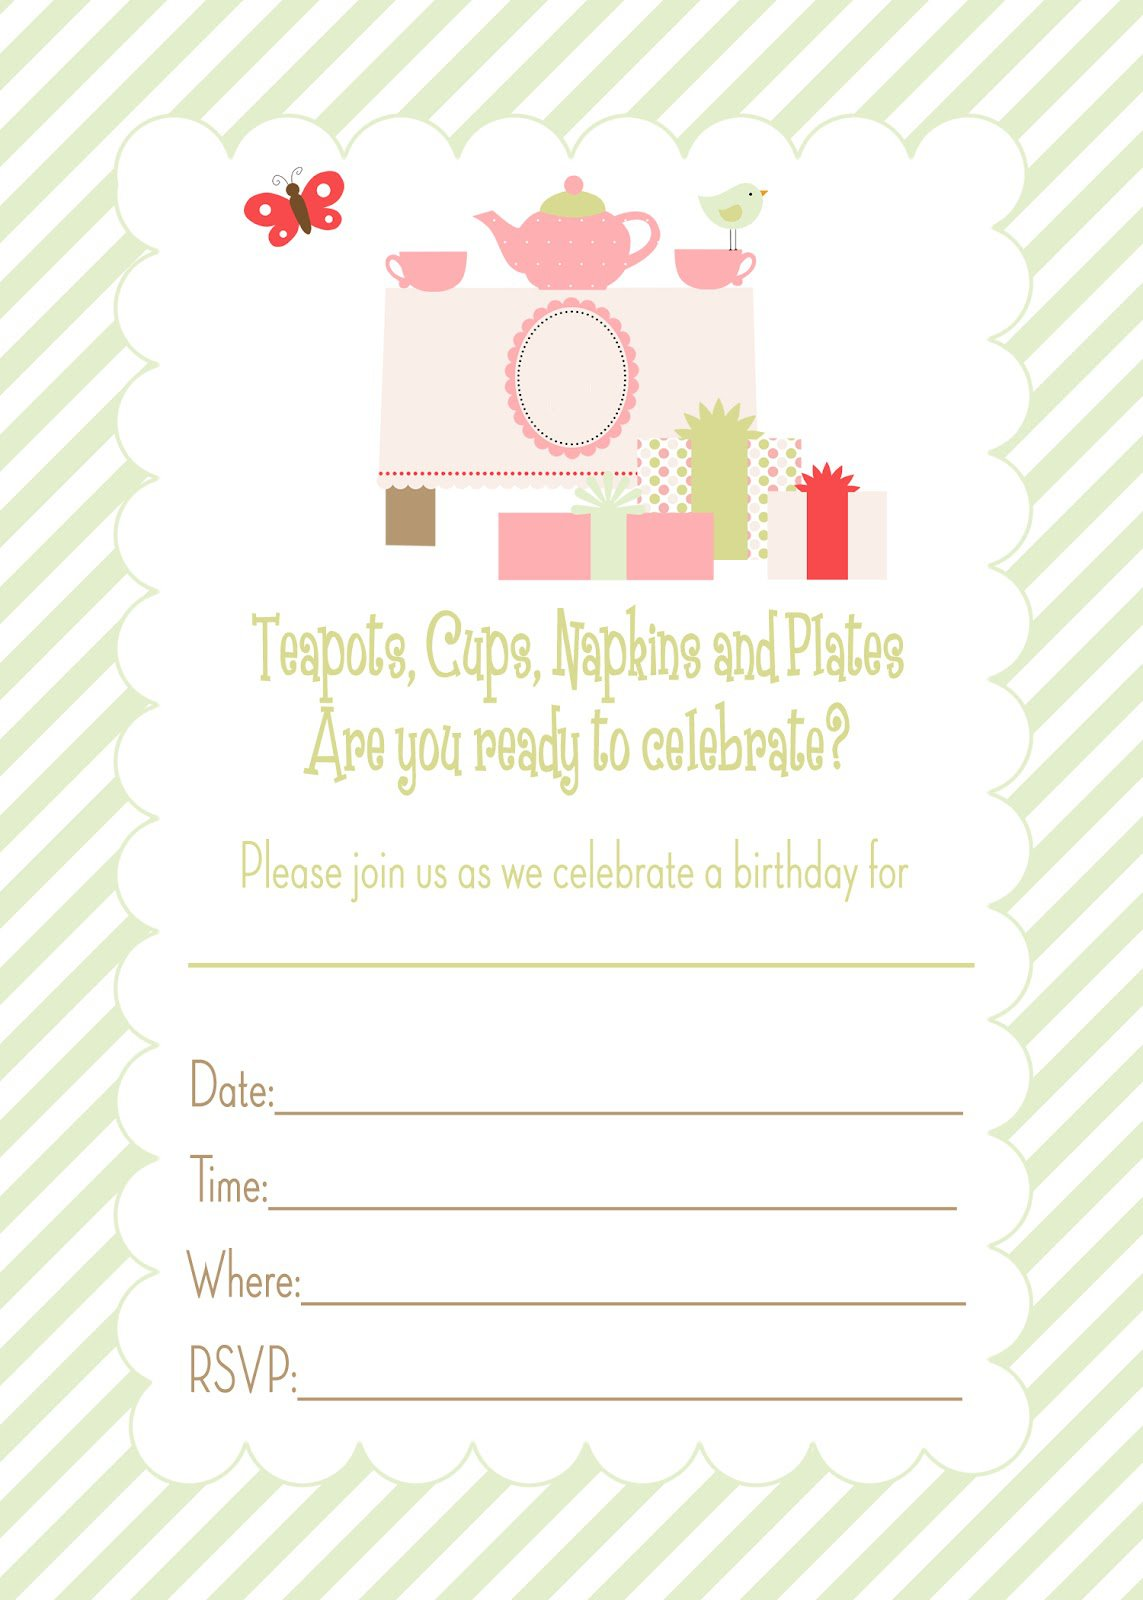 Generic Birthday Invitations Templates